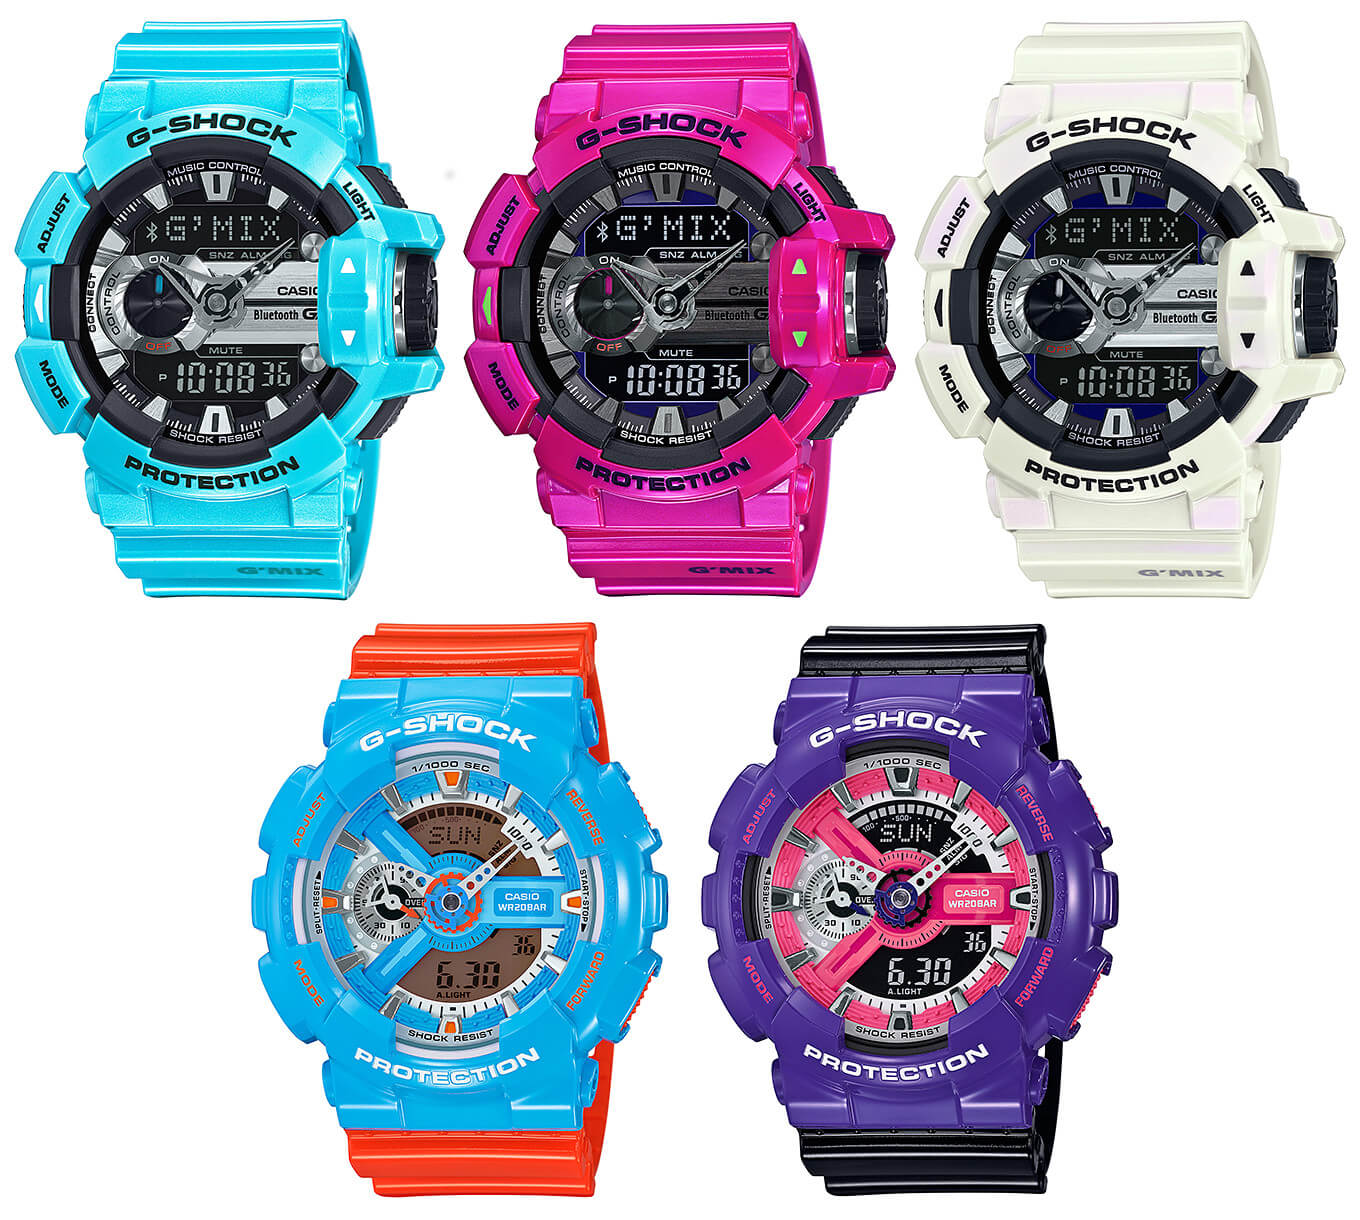 newest 610b4 3cd37 New G-Shock GBA-400 and GA-110NC Colors – G-Central G-Shock ...